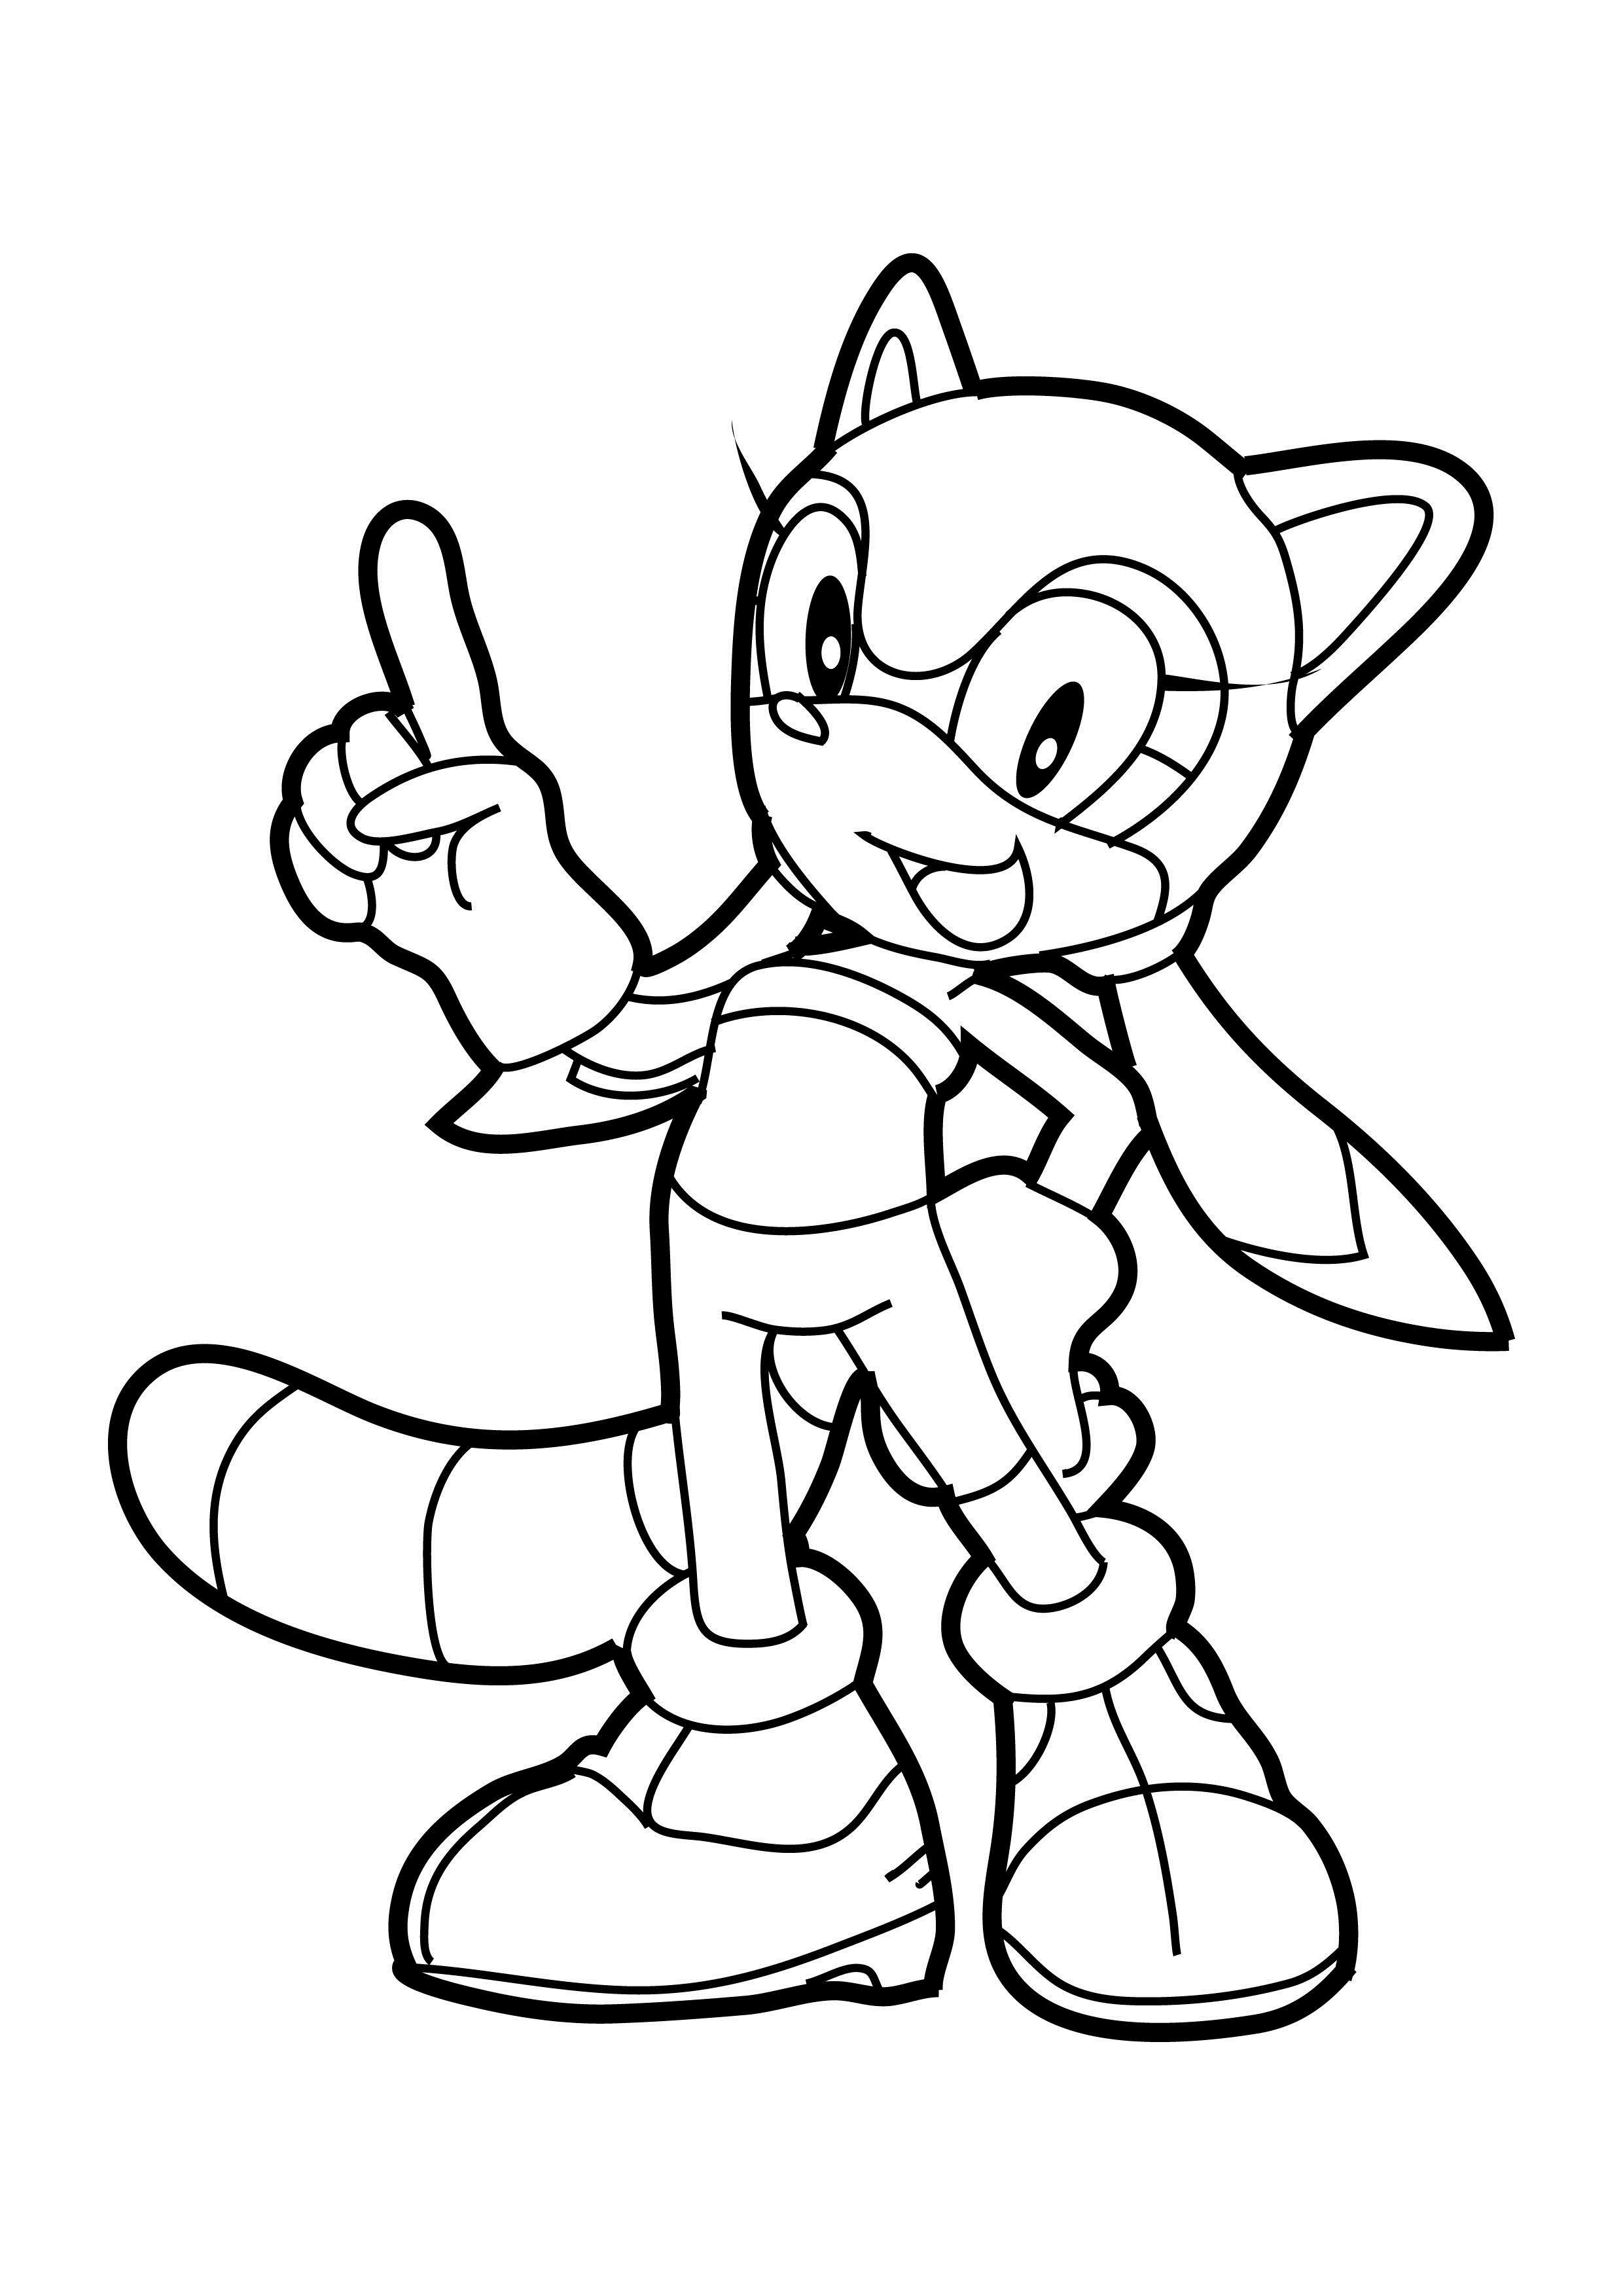 coloring pages sonic 21 sonic the hedgehog coloring pages free printable sonic pages coloring